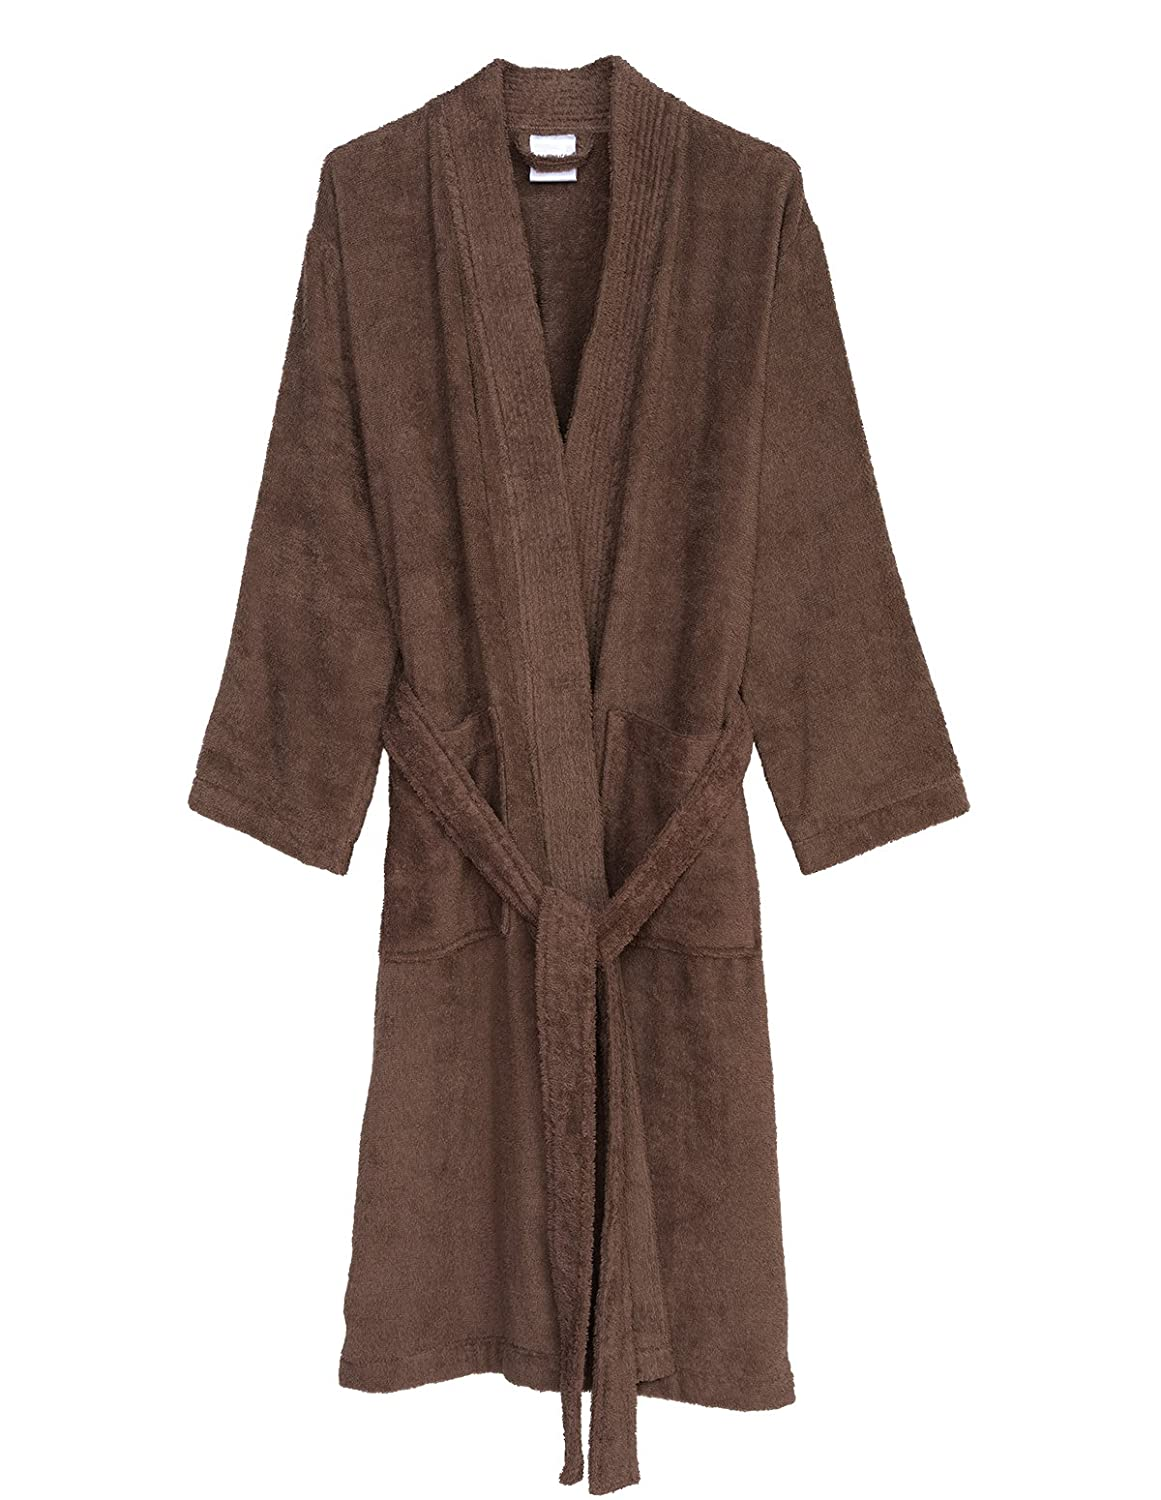 Deep Taupe TowelSelections Turkish Cotton Robe Kimono Collar Terry Bathrobe Made in Turkey